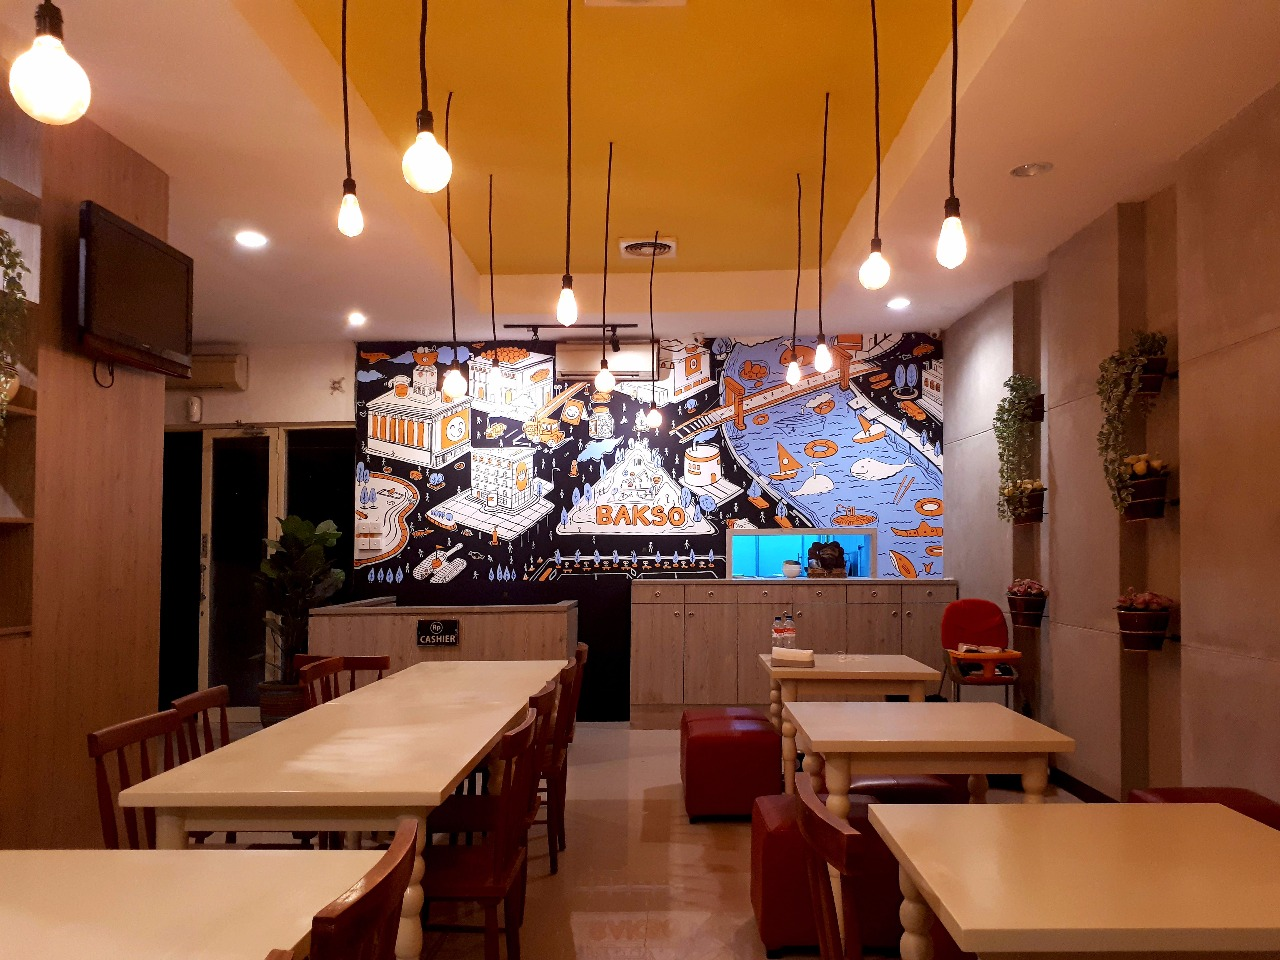 Bali Mural Service, Amazing Doodle Cafe Mural and Realistic Mural